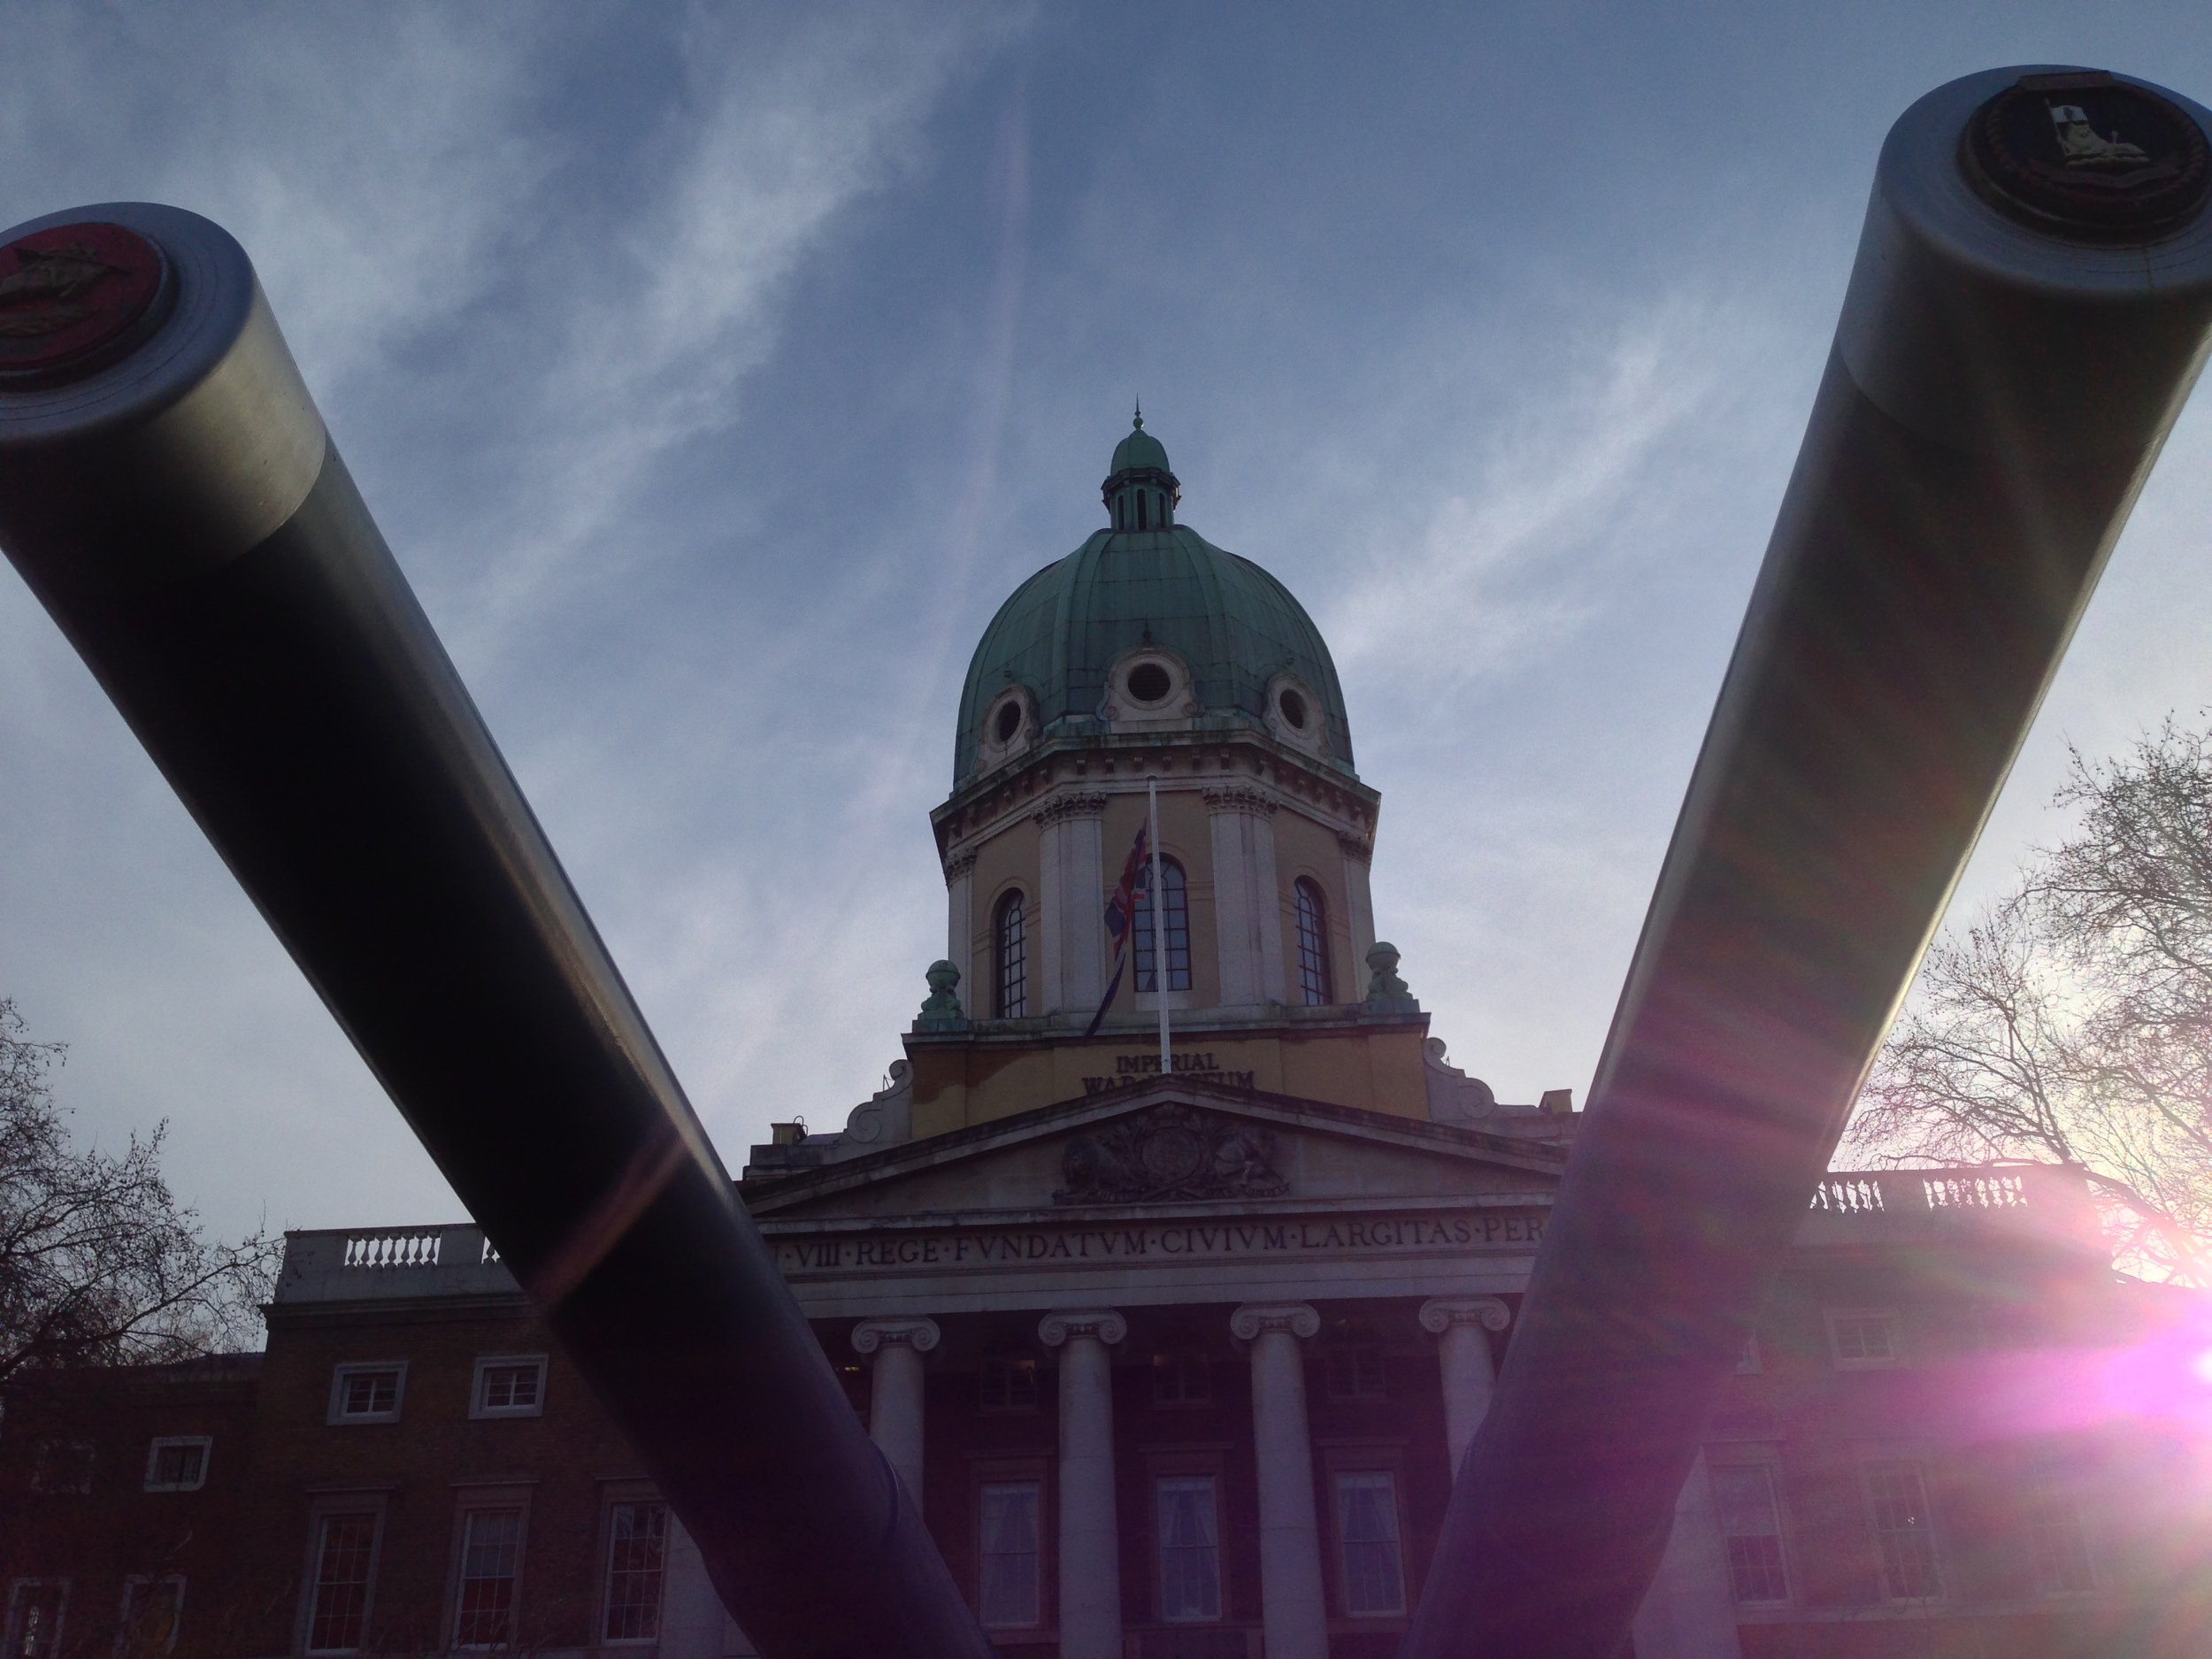 Imperial War Museum - London, UK